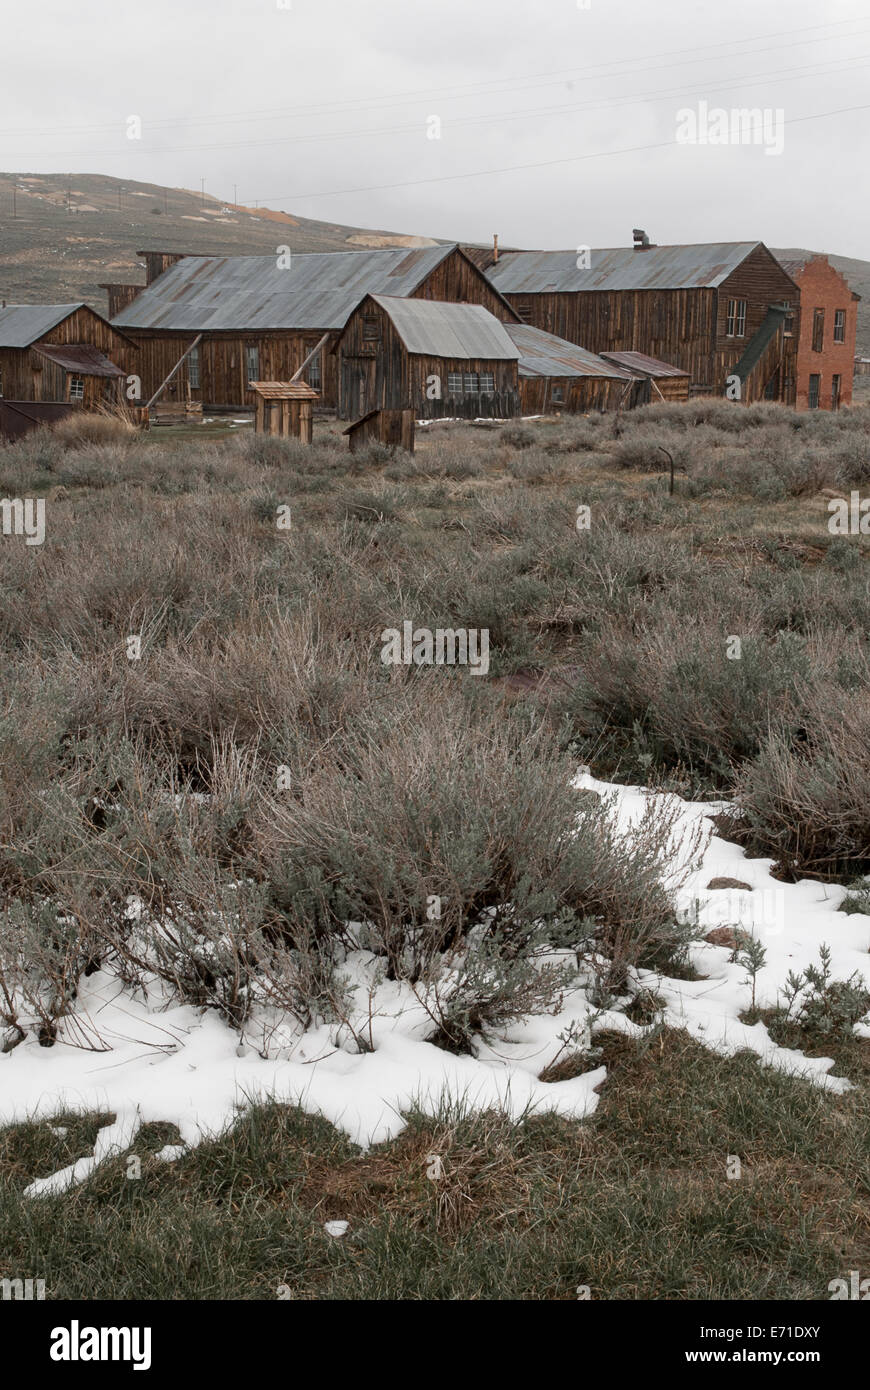 View across melting snow and shrubland to main buildings of Bodie, gold rush town in California - Stock Image